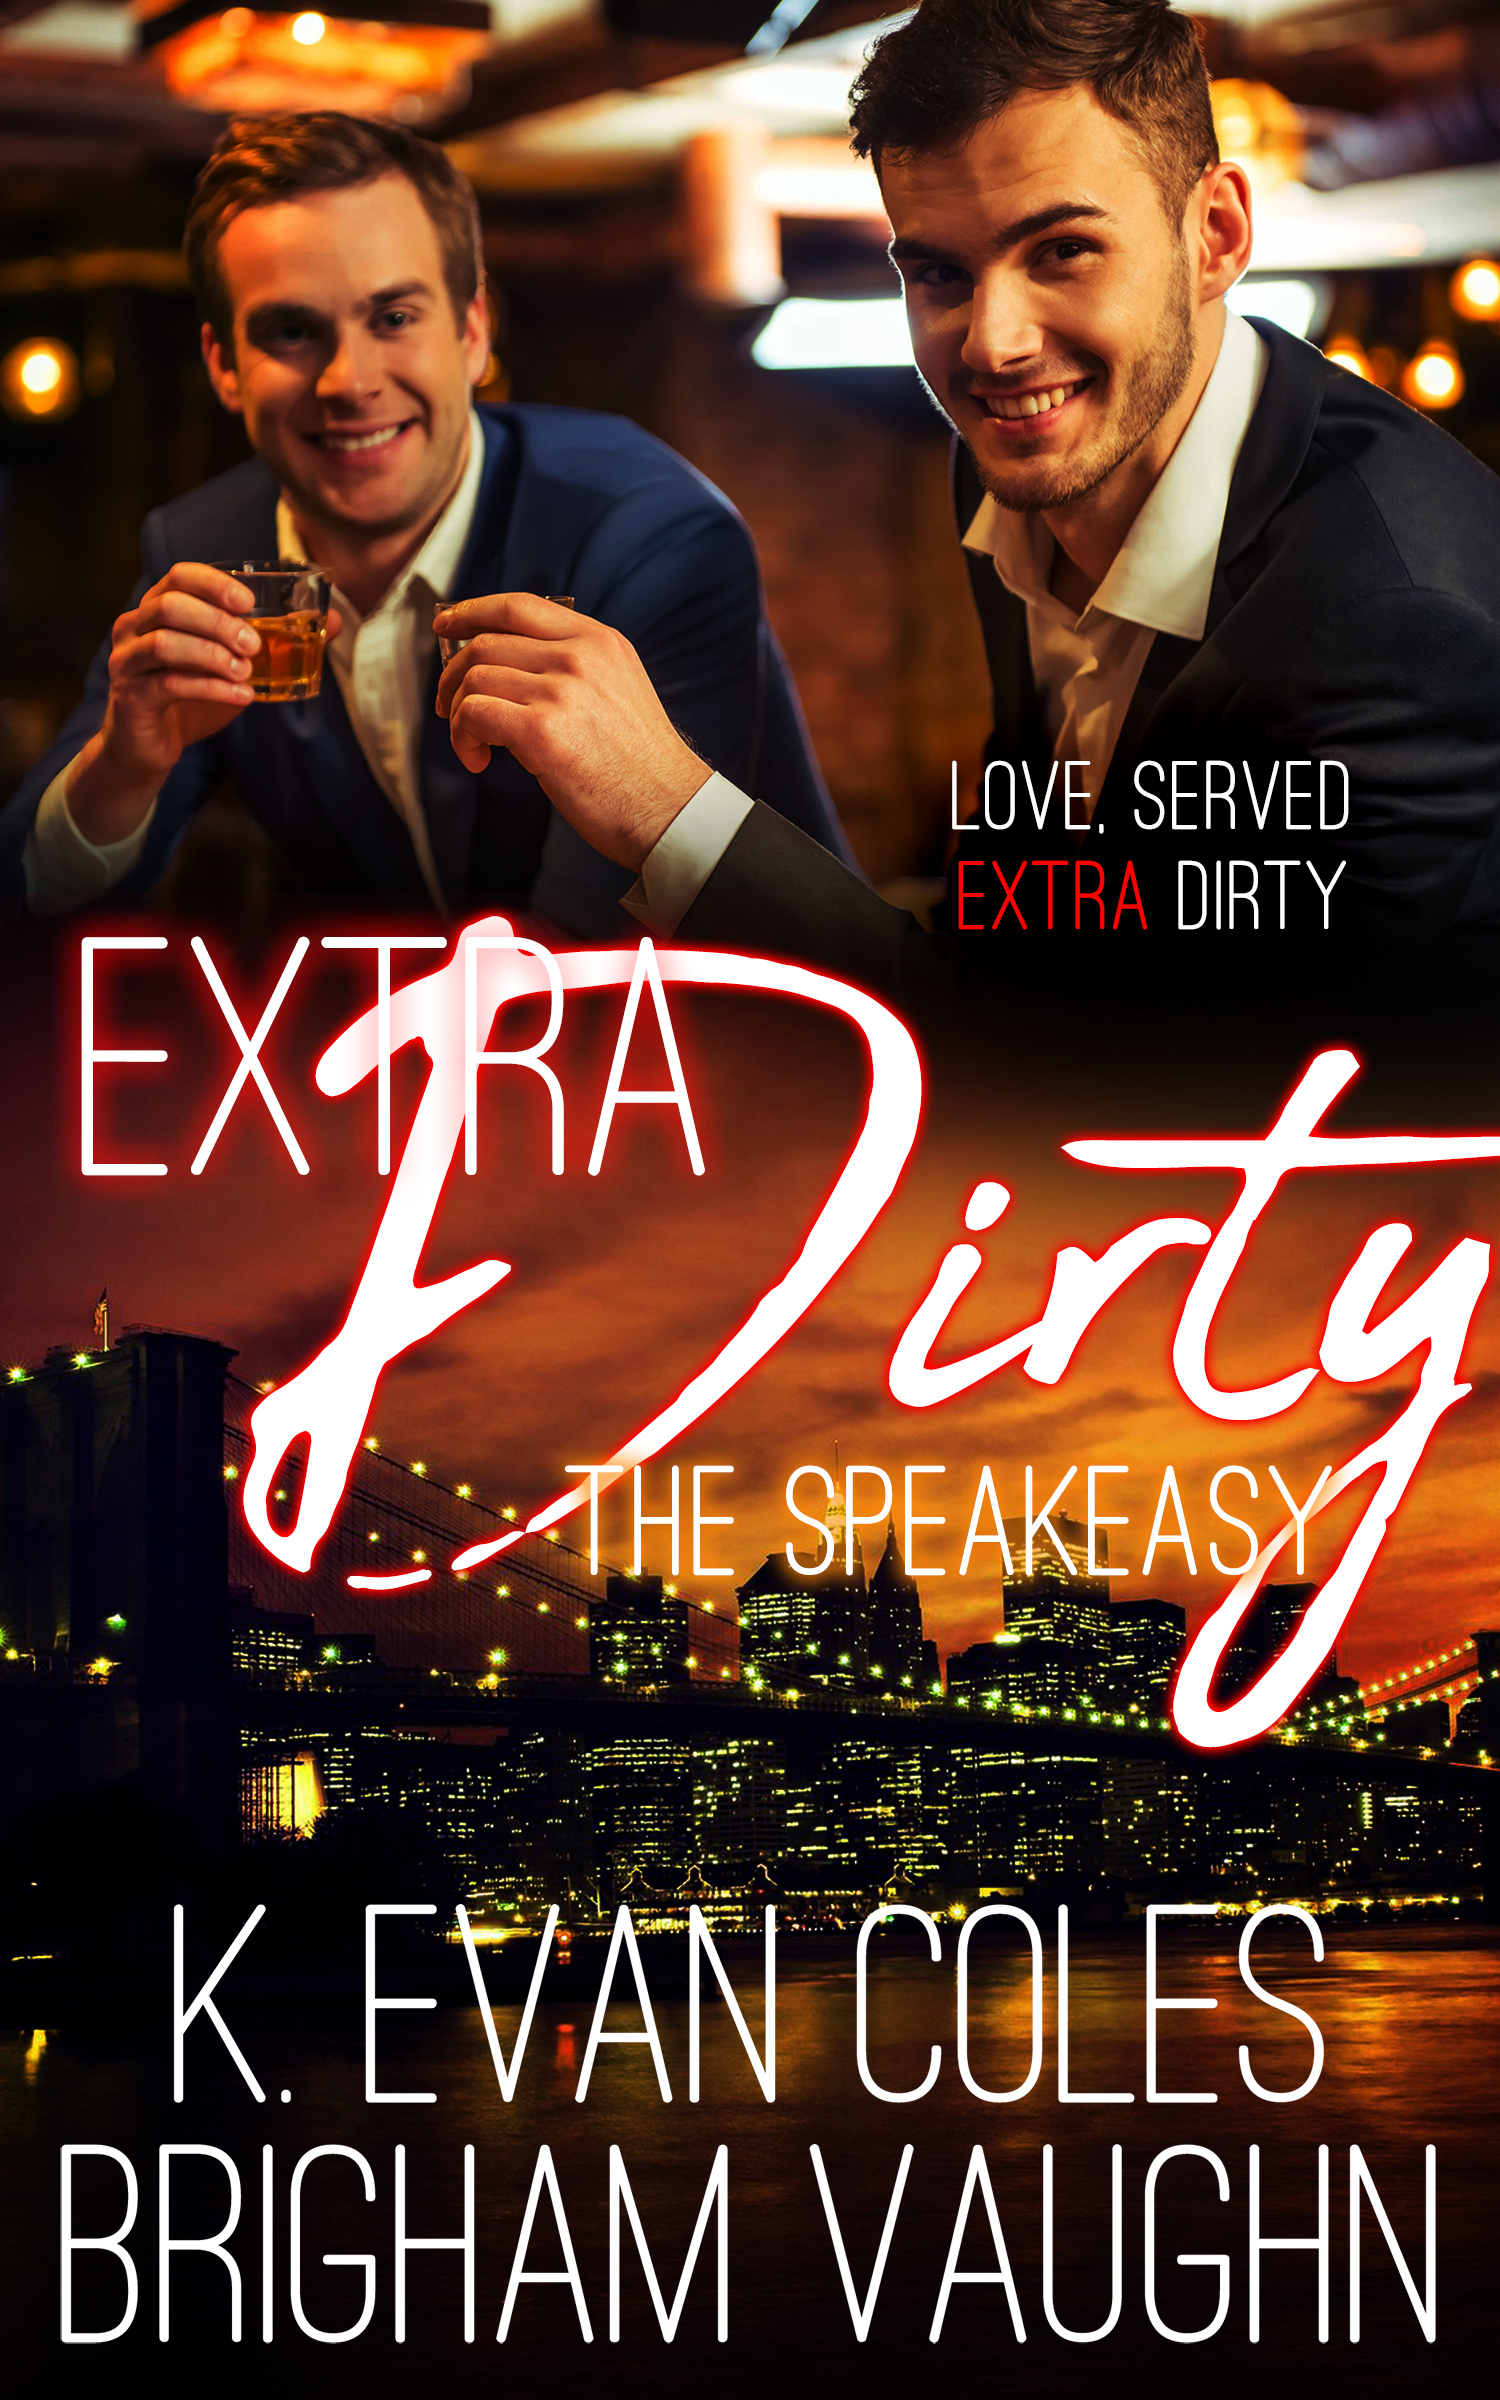 ExtraDirty_9781786517098_Ebook_1500x2400